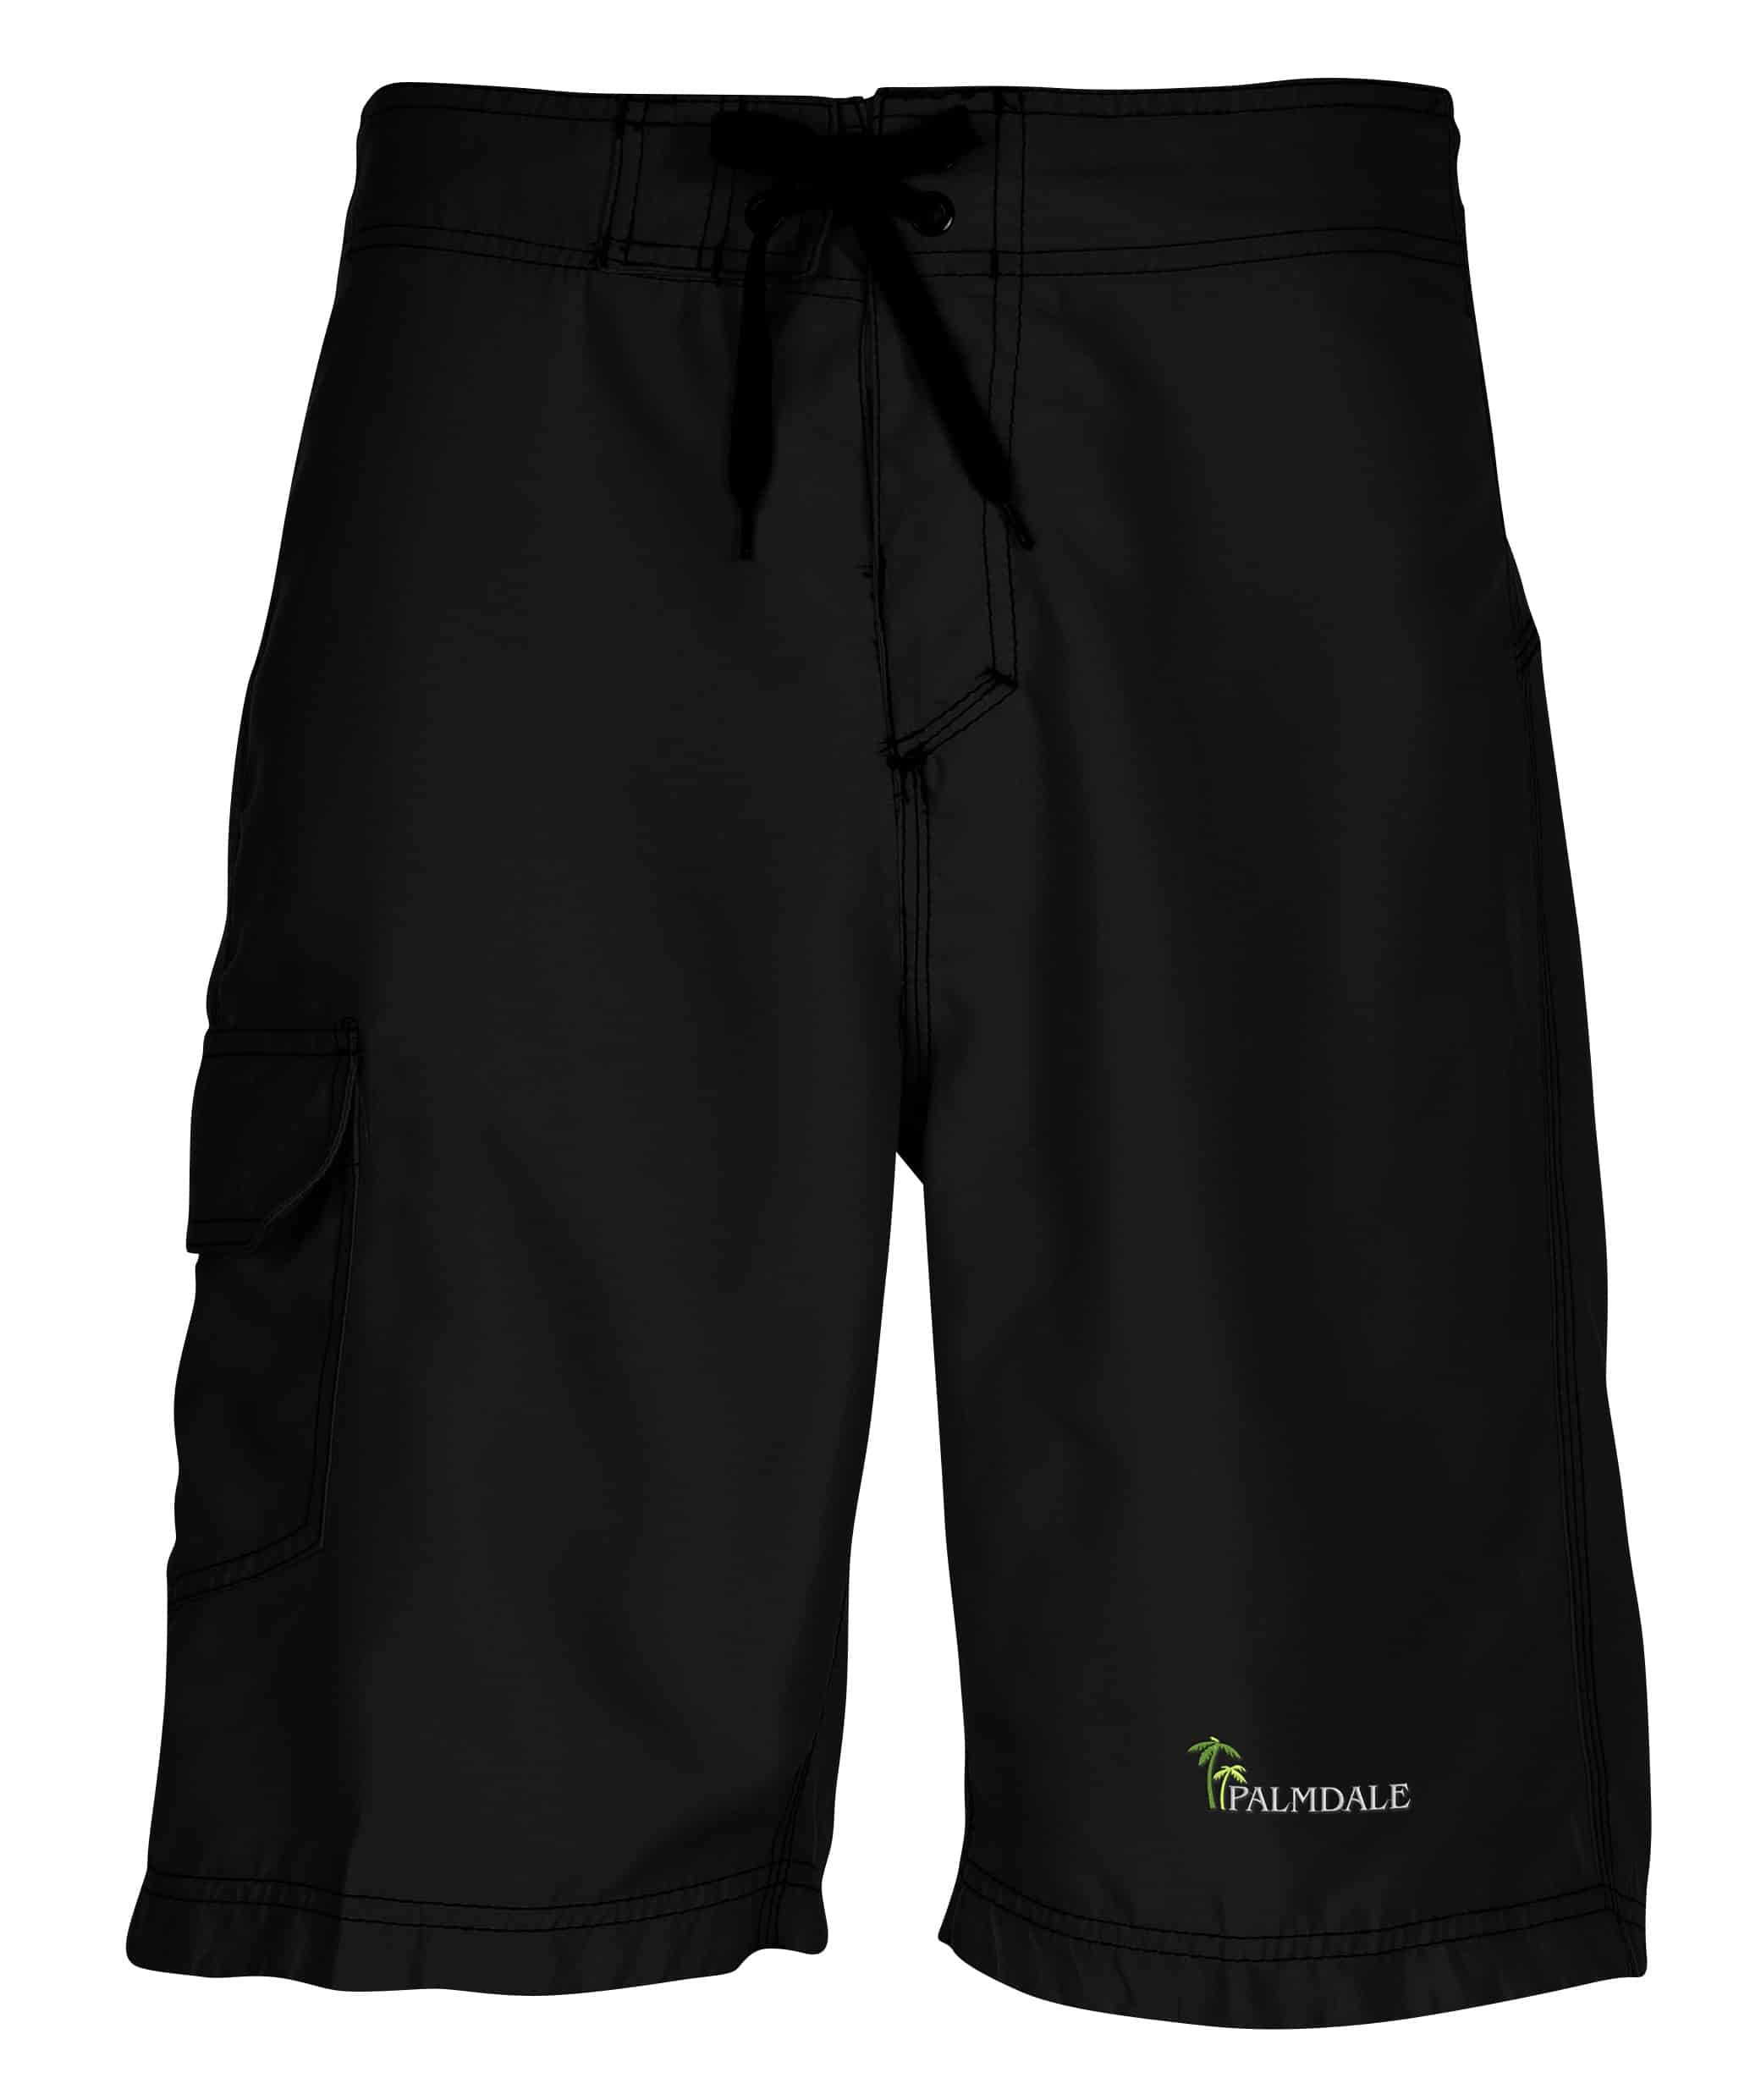 A pair of black Burnside Solid Board Shorts.